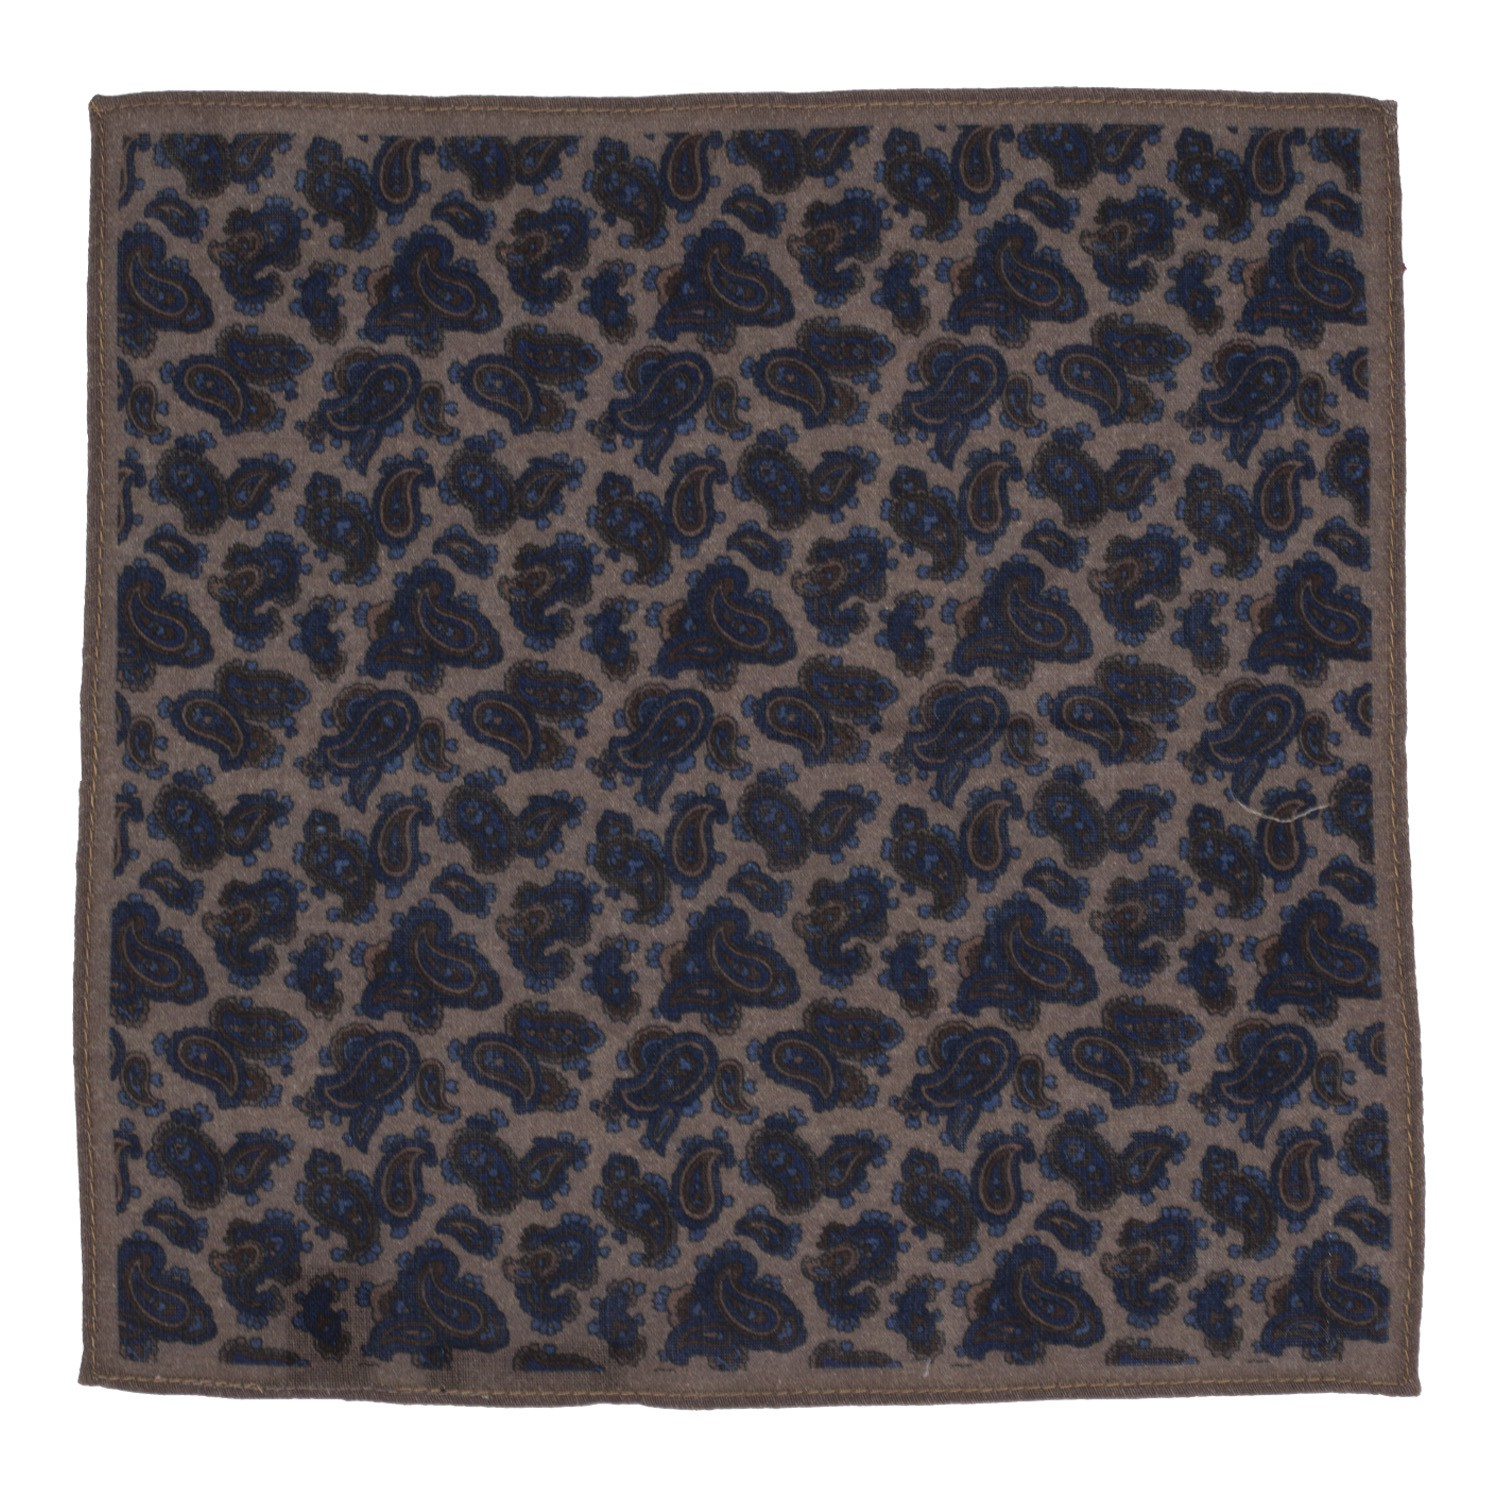 Small Paisly Print Brown and Blue Wool Pocket Square